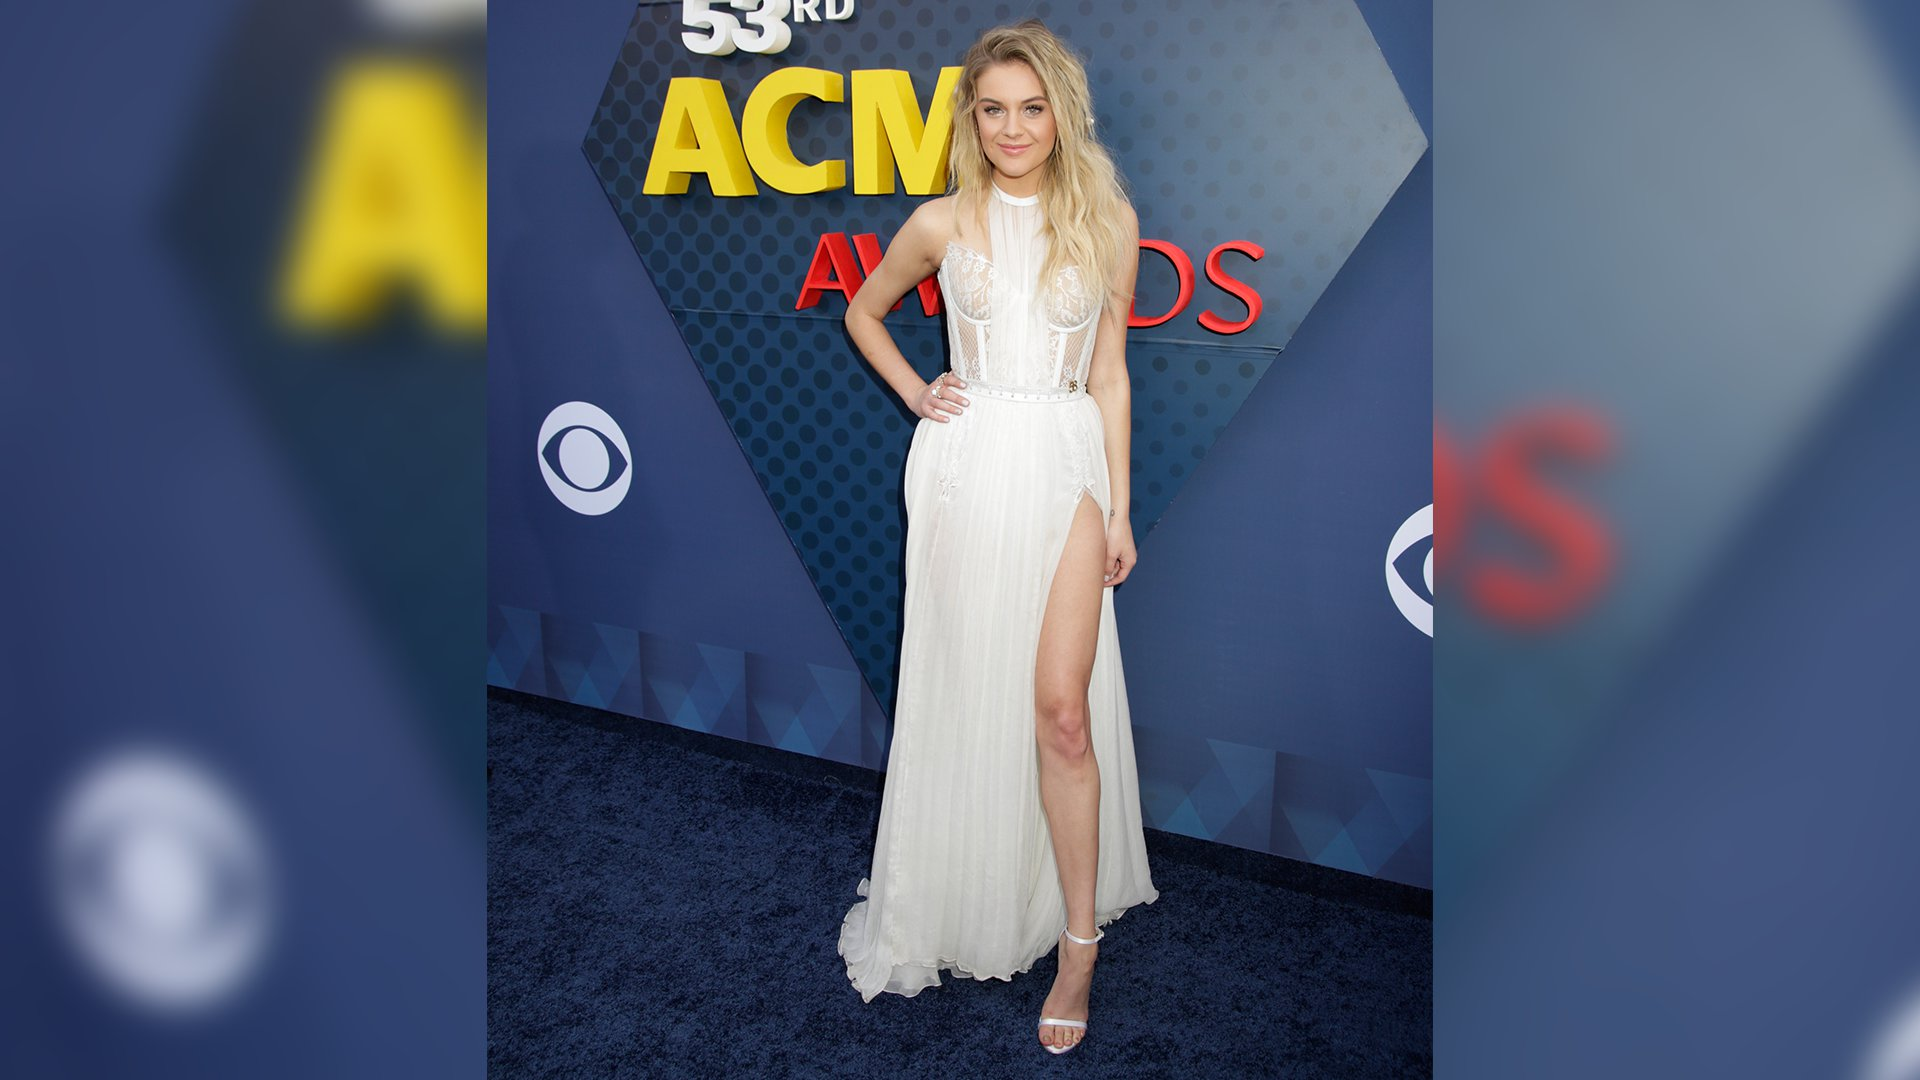 Kelsea Ballerini might hate love songs, but it looks like she's not opposed to gowns with high necks and a side slit.